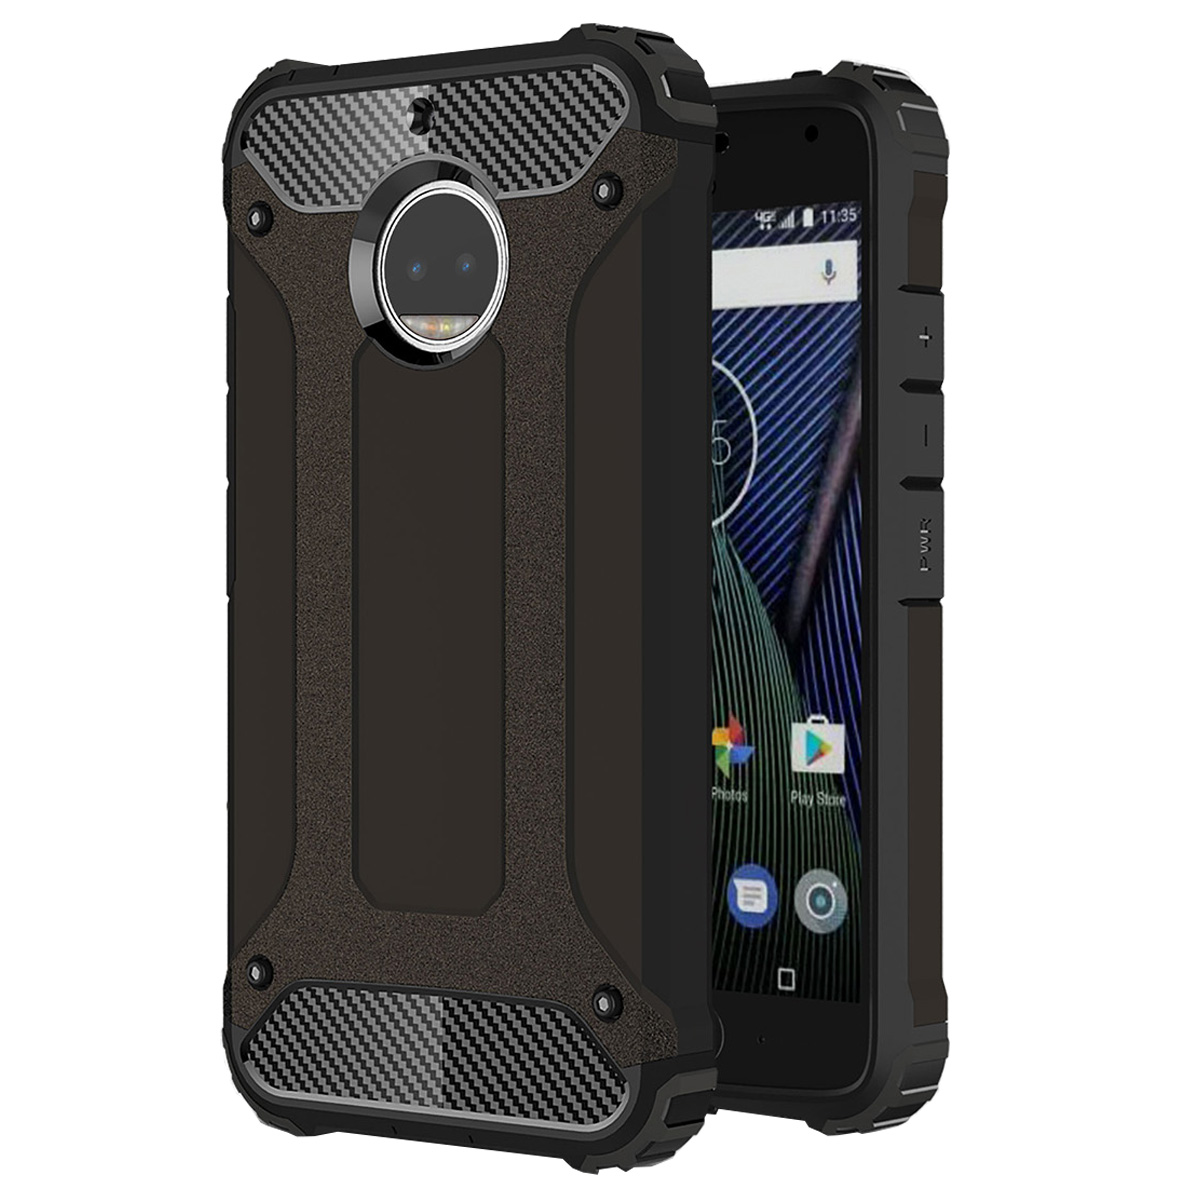 online retailer 66d9e a2f0e Moto G5s Case, Mooncase Hybrid Armor Case Dual Layer [Shock Absorbing] Soft  Silicone & Hard Plastic [Full Body] Protective Shell Cover for Motorola ...